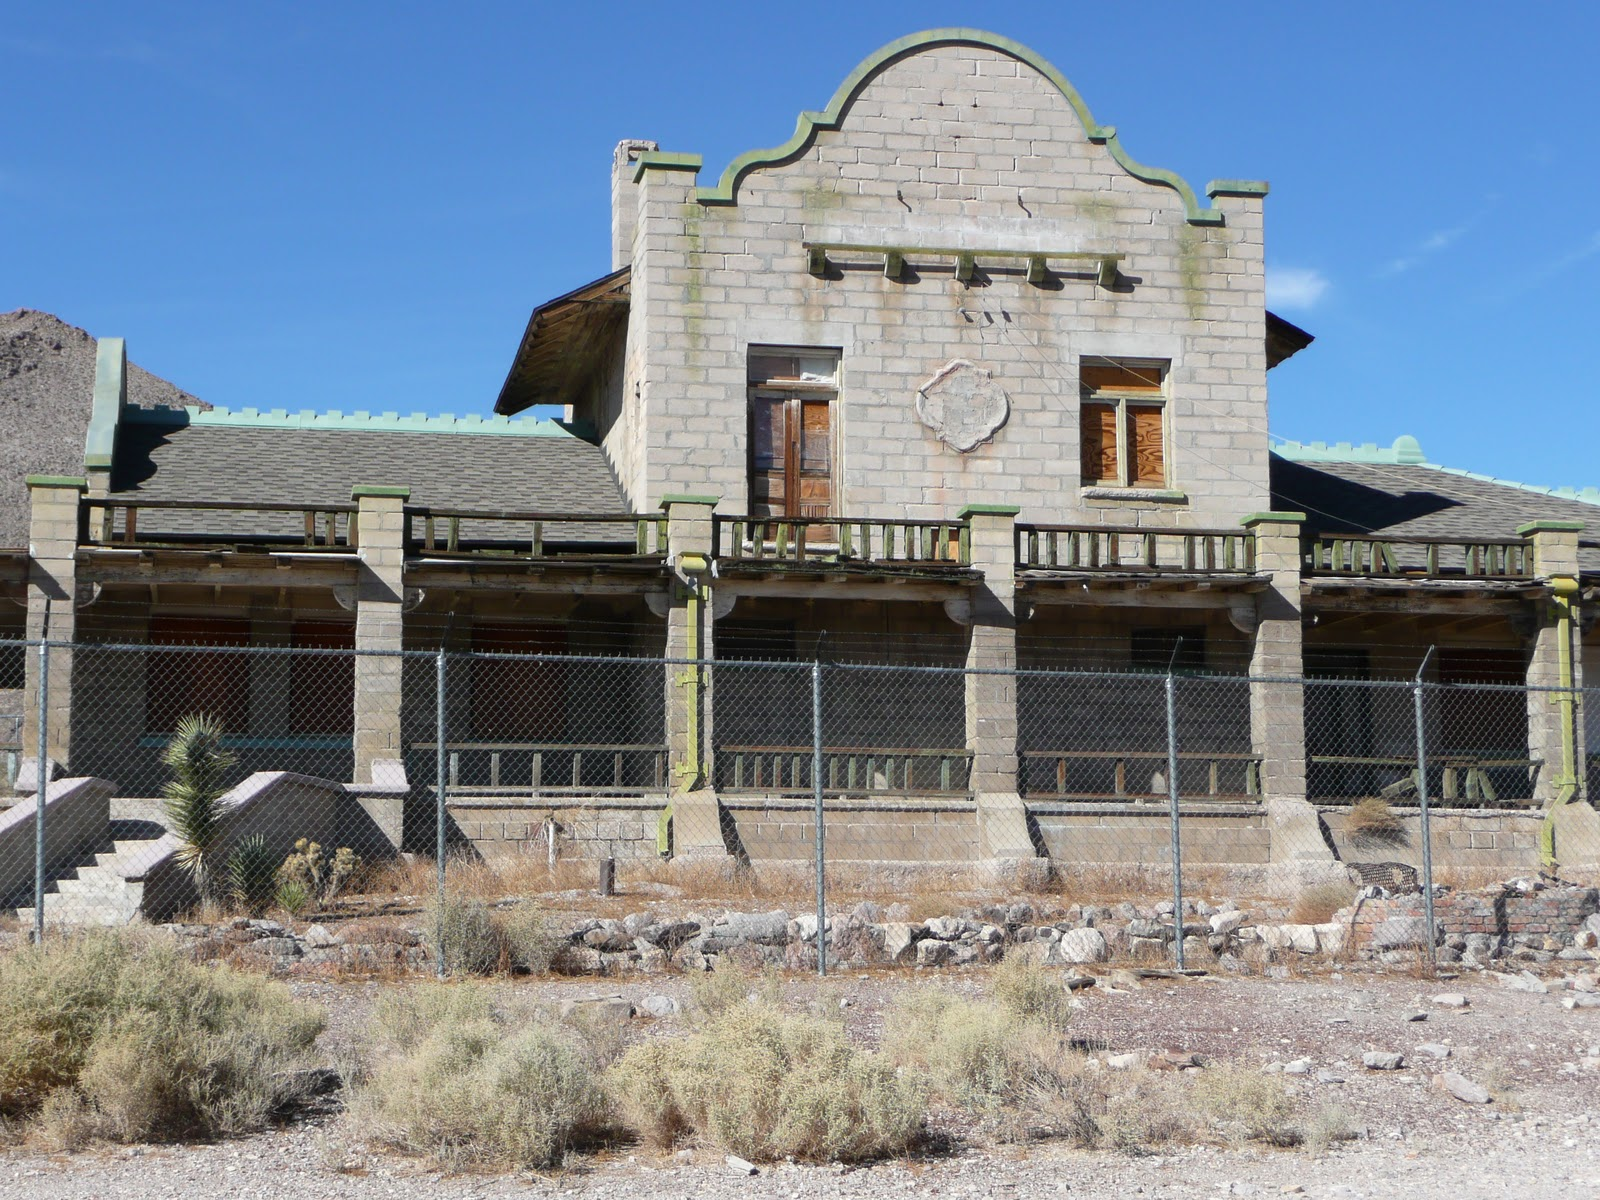 Life at 55 mph ghost town rhyolite nevada click here for more info